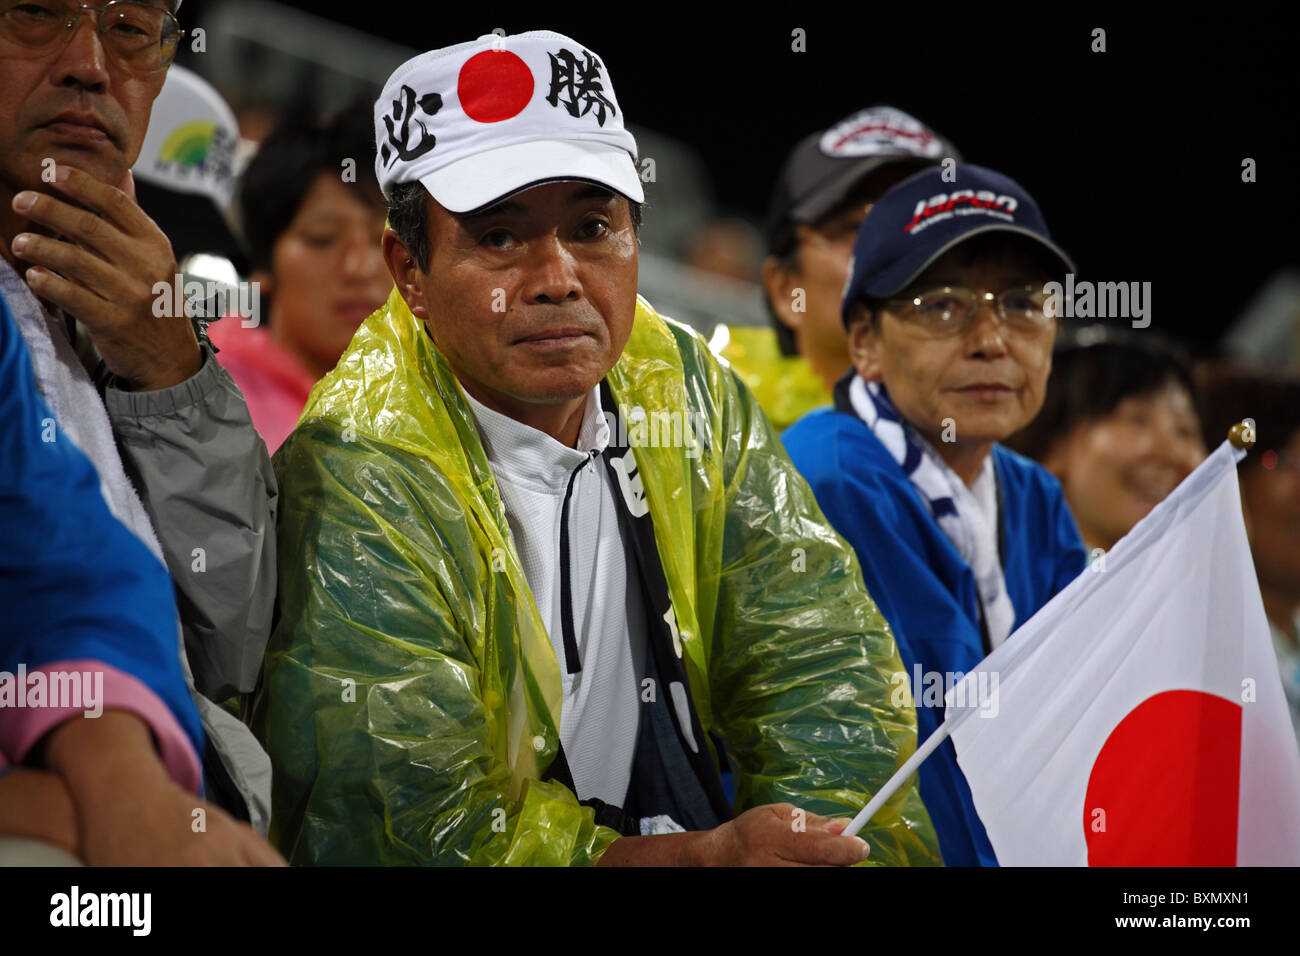 Japanese fans at women's hockey match, Olympic Games, Beijing - Stock Image